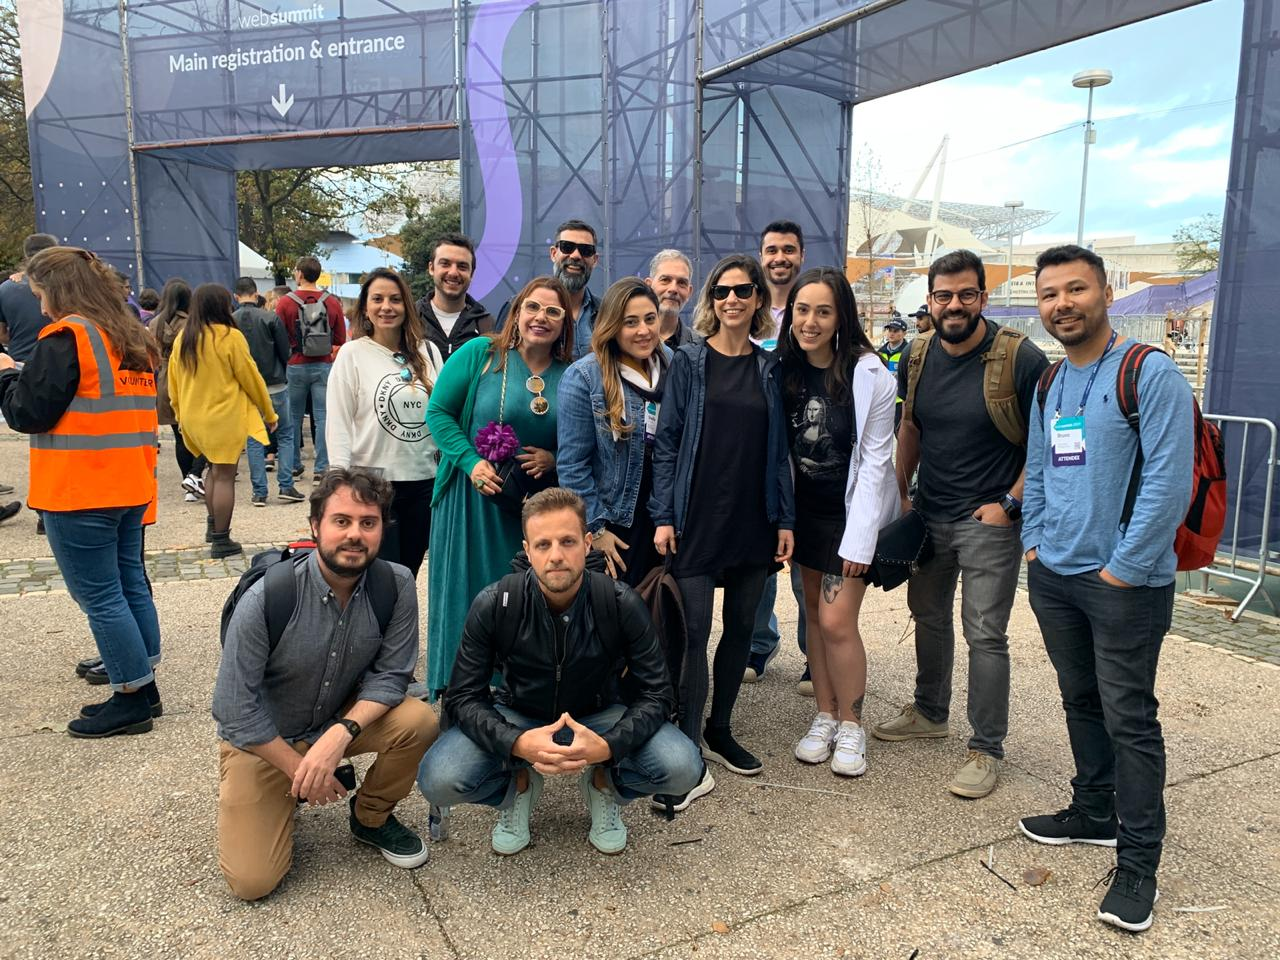 [Review] ØCLB journey Lisboa: vem aí o Web Summit 2020